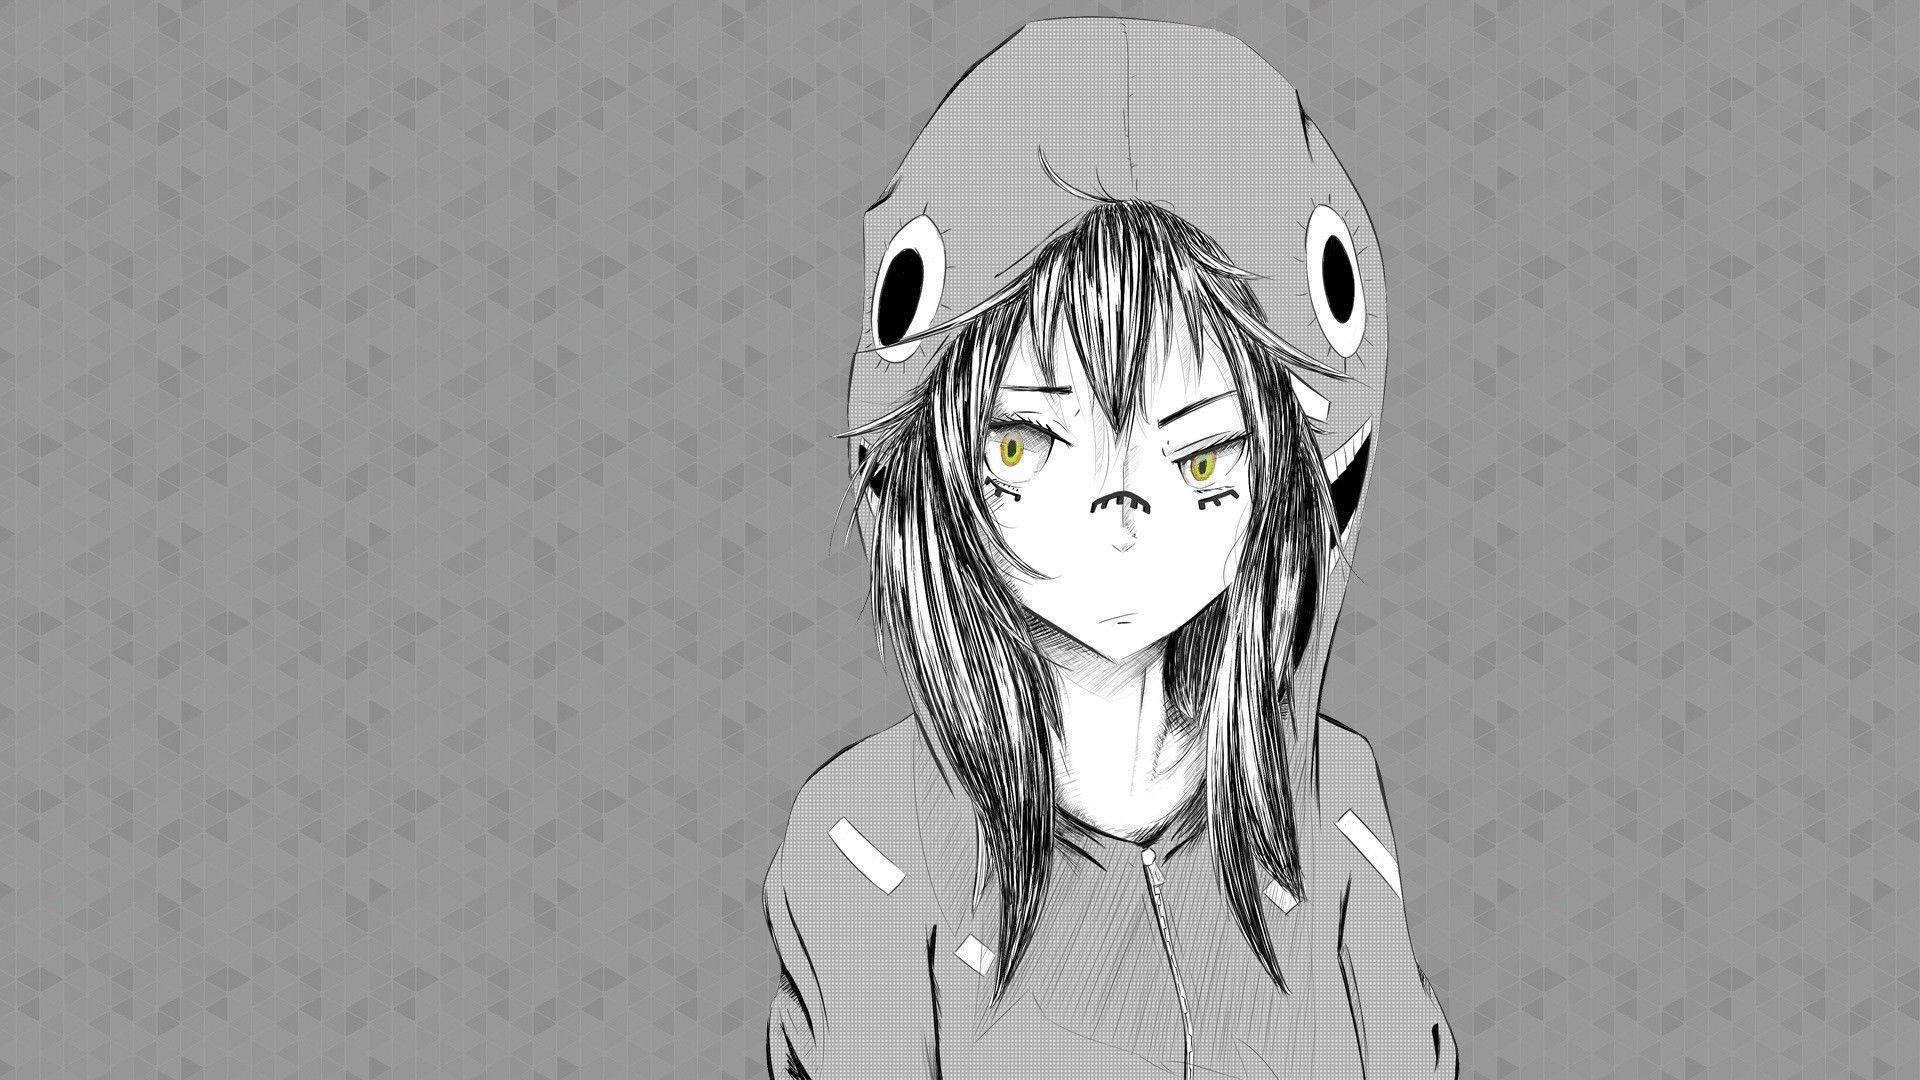 50 lock screen black and white wallpaper iphone. Aesthetic Anime Girl 1920x1080 Black Wallpapers ...